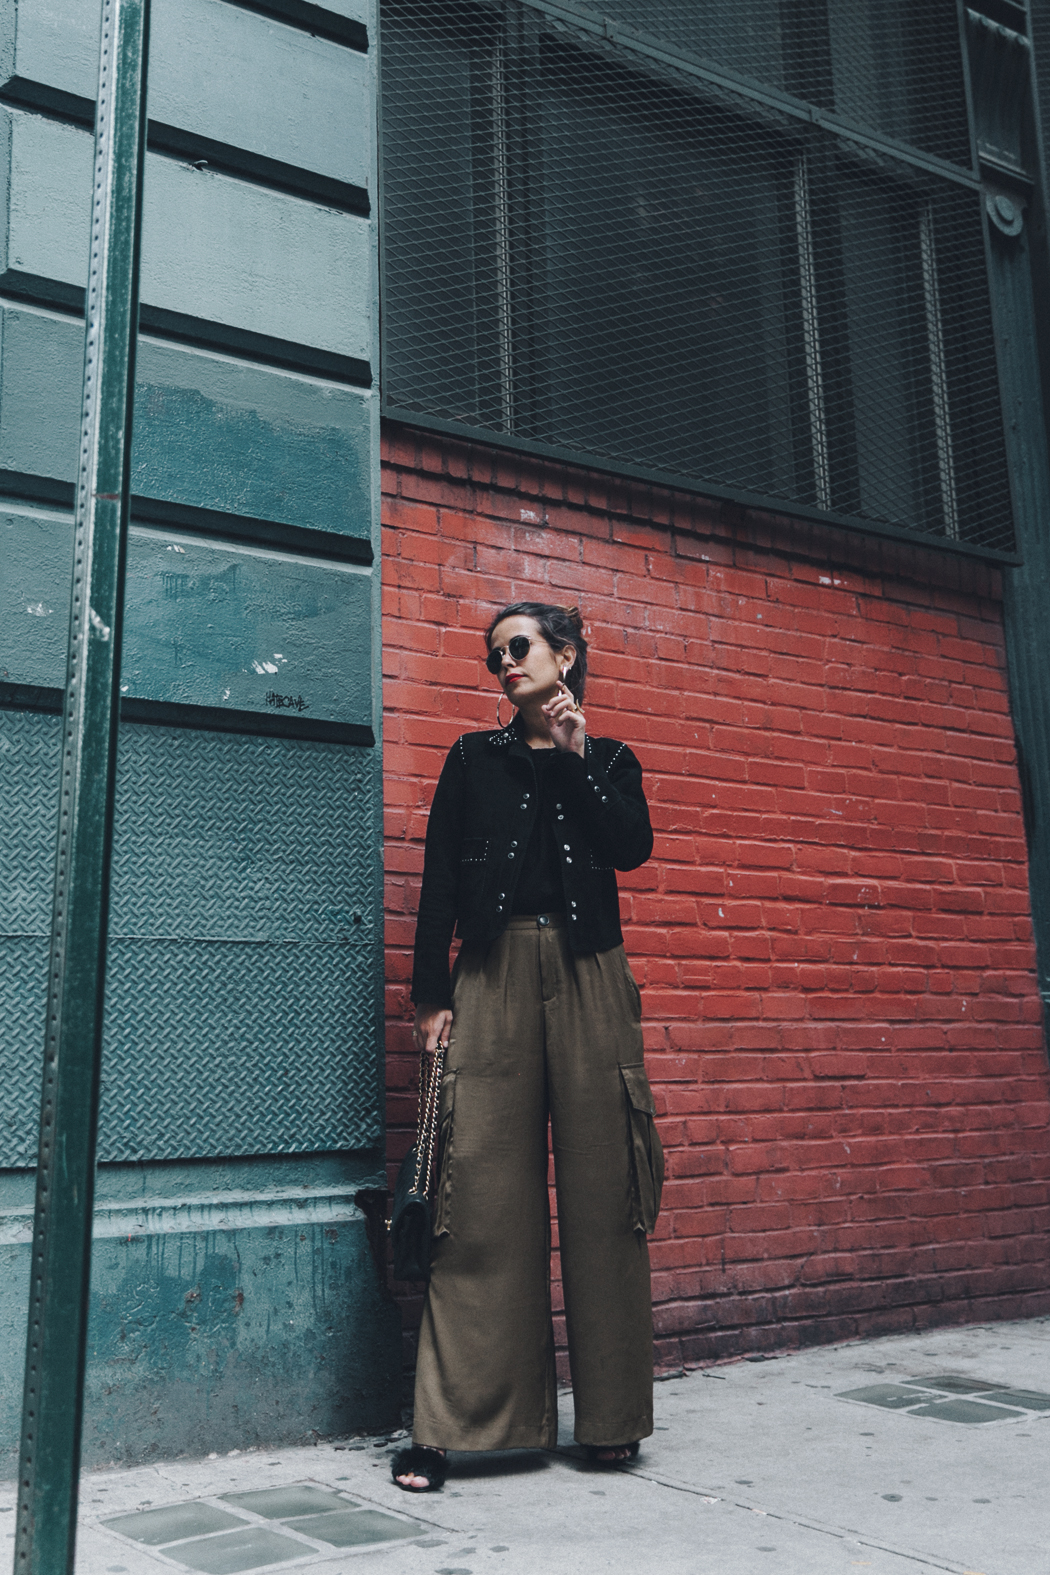 Khaki_Trousers-Sandro_Suede_Jacket-BNKR_Sandals-Fur_Sandals-Chanel_Bag-Outfit-Street_Style-NYC-13